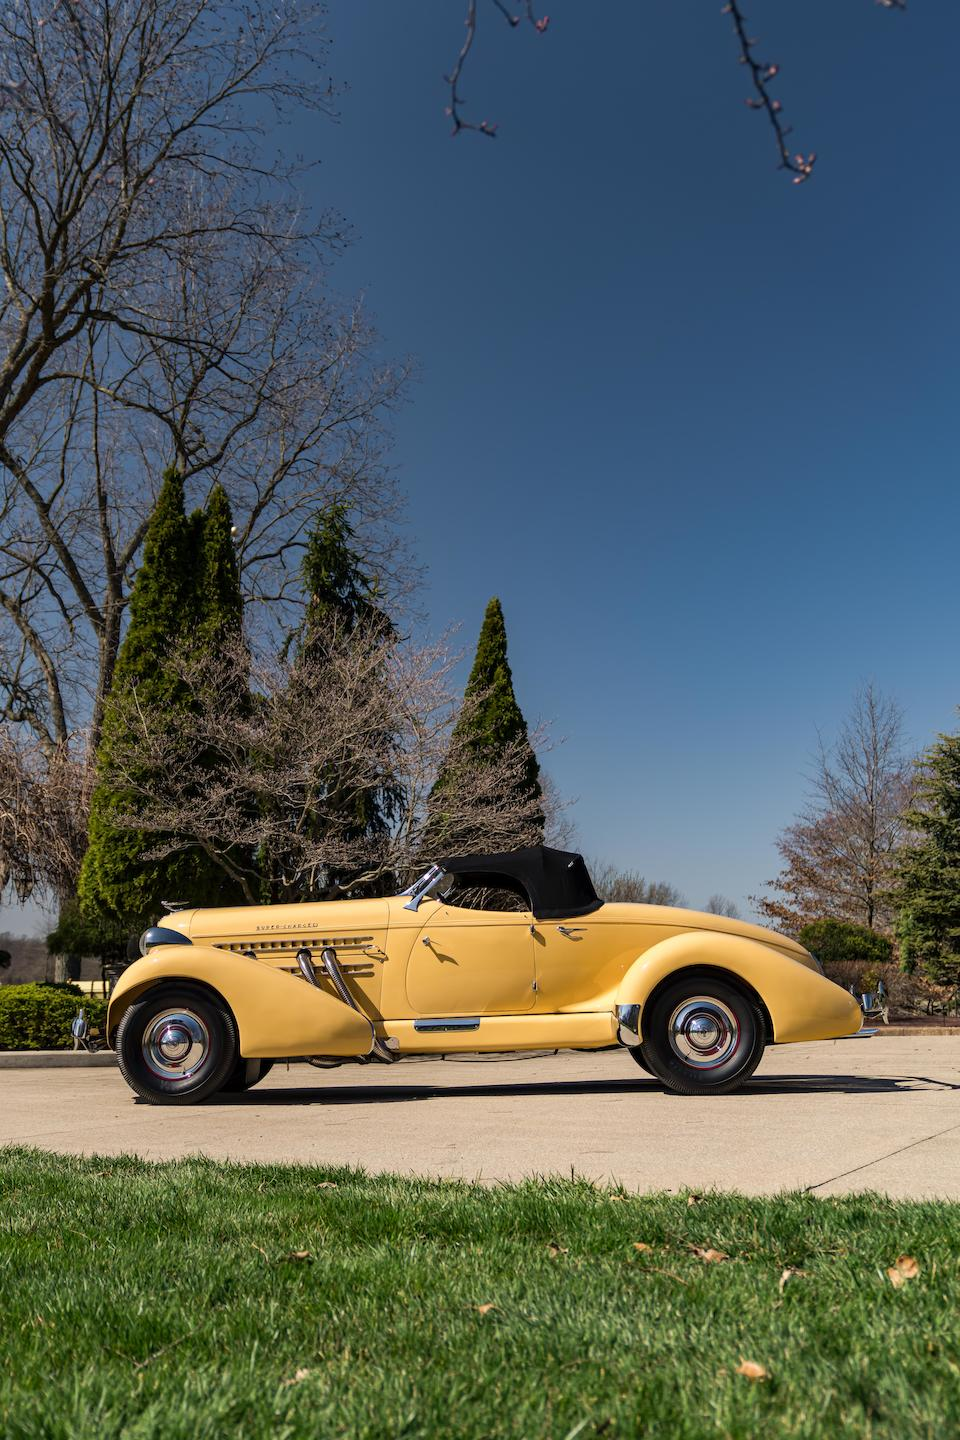 <b>1935 Auburn 851 Supercharged Boattail Speedster  </b><br />Serial no. 851 33094 E <br />Chassis no. 2094 <br />Engine no. GH 43309<br />Body no. U47-194